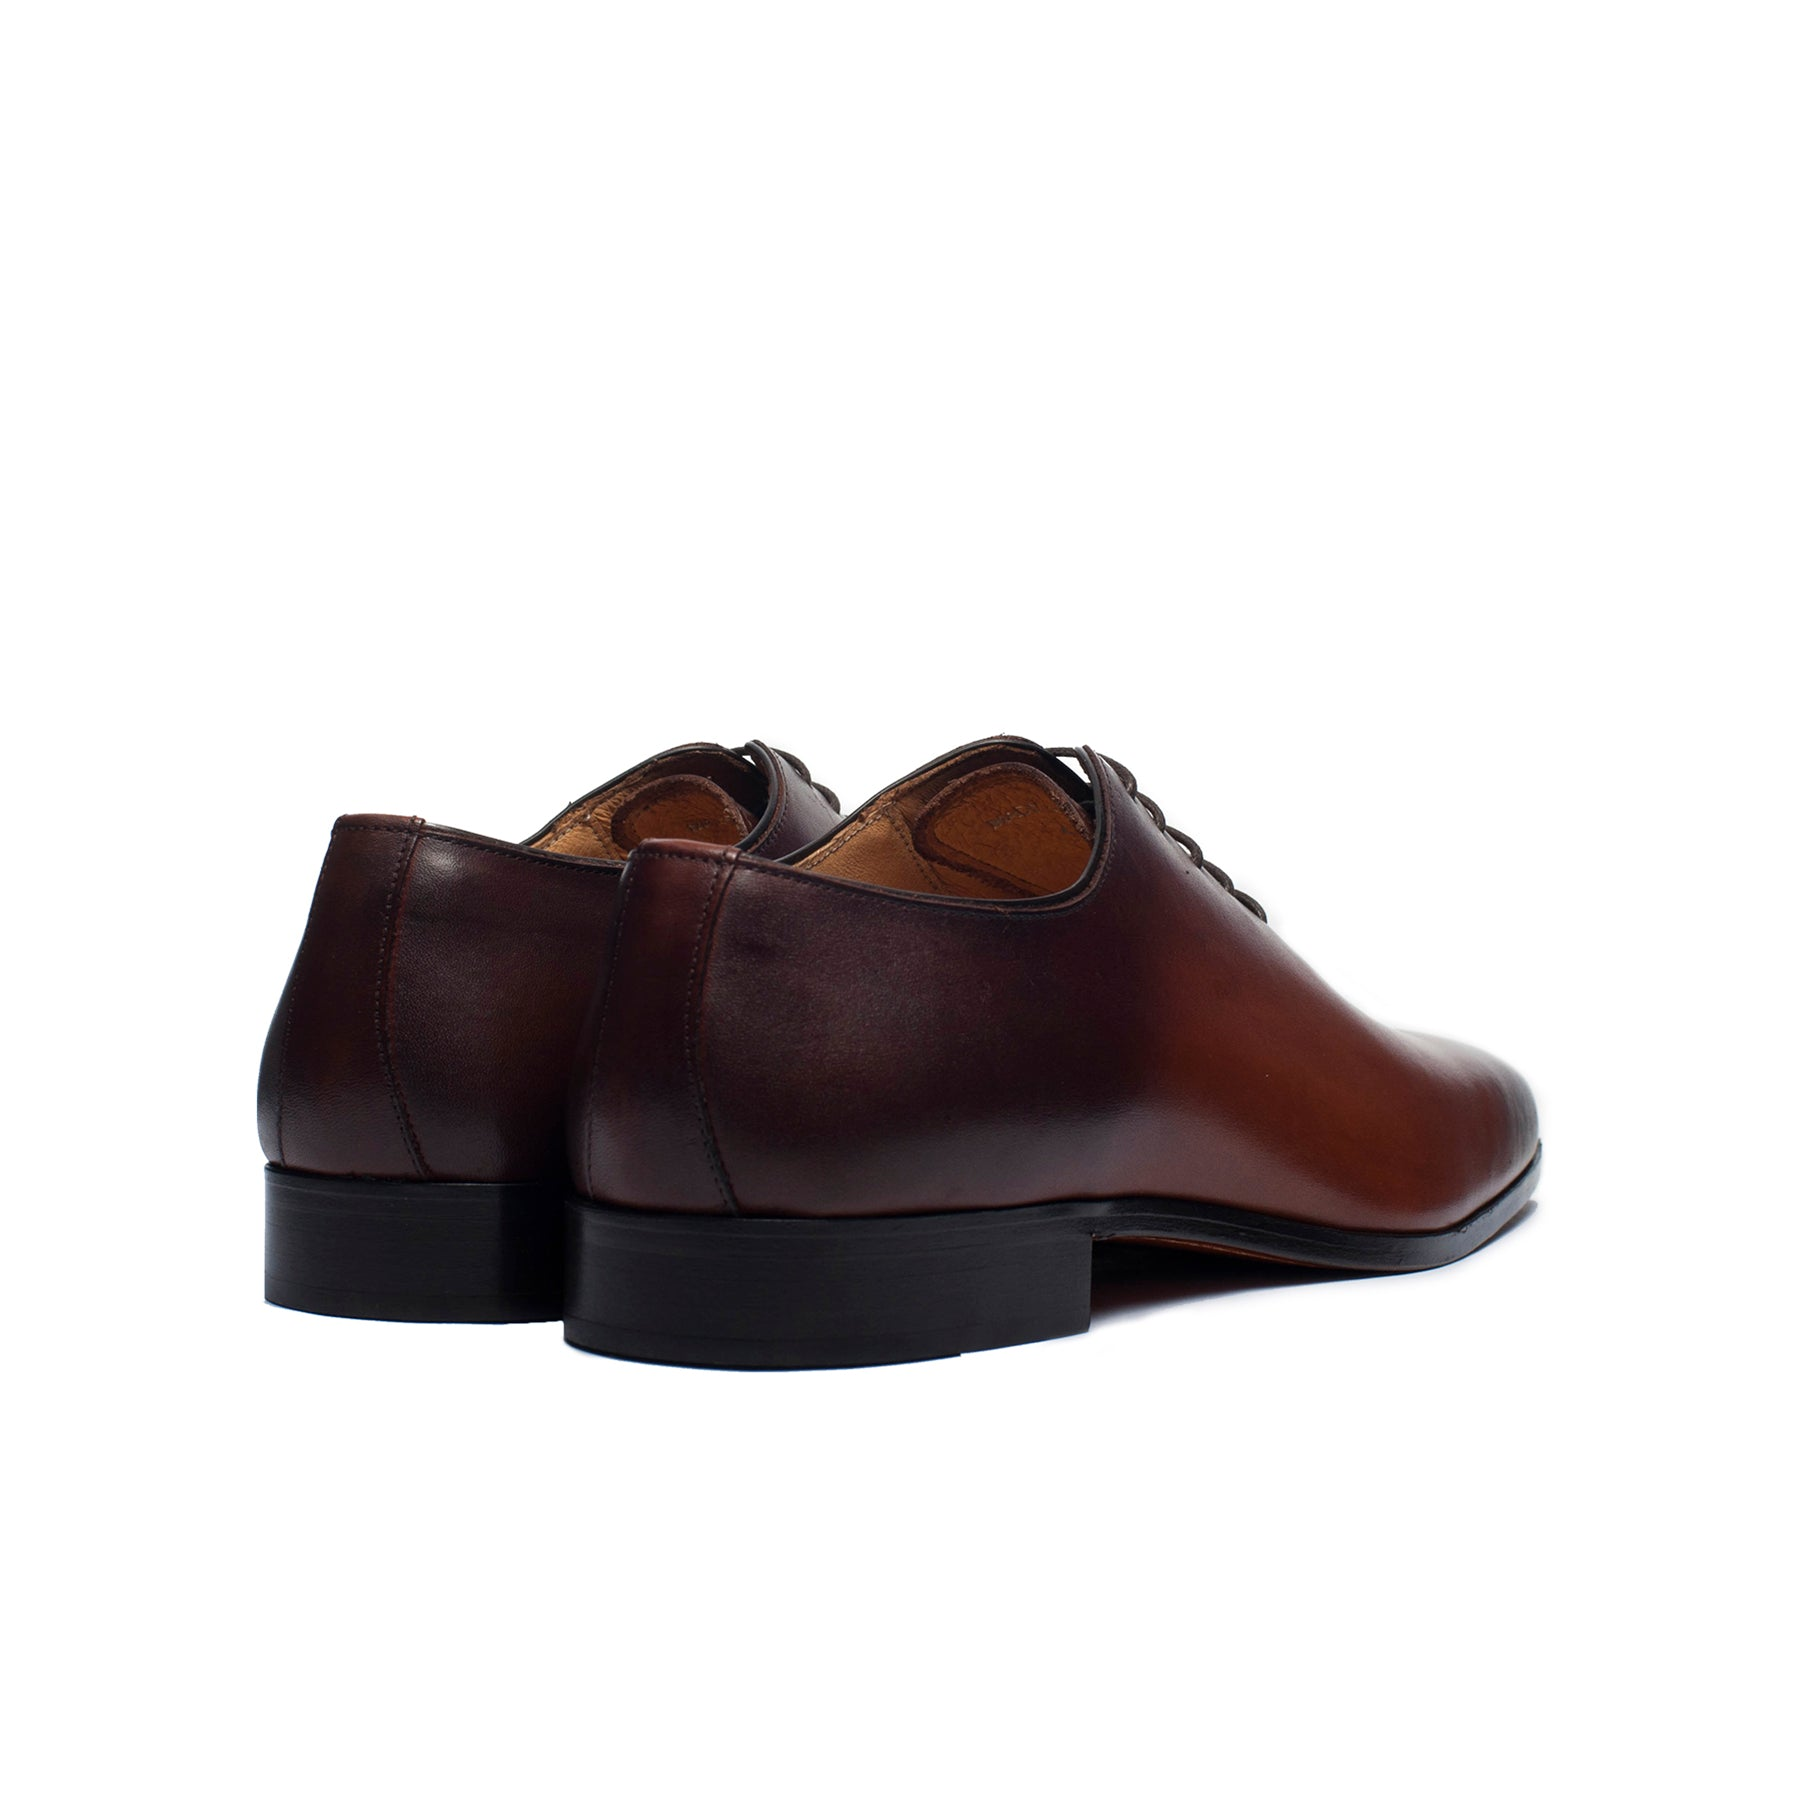 Antonio Tan Leather Shoes